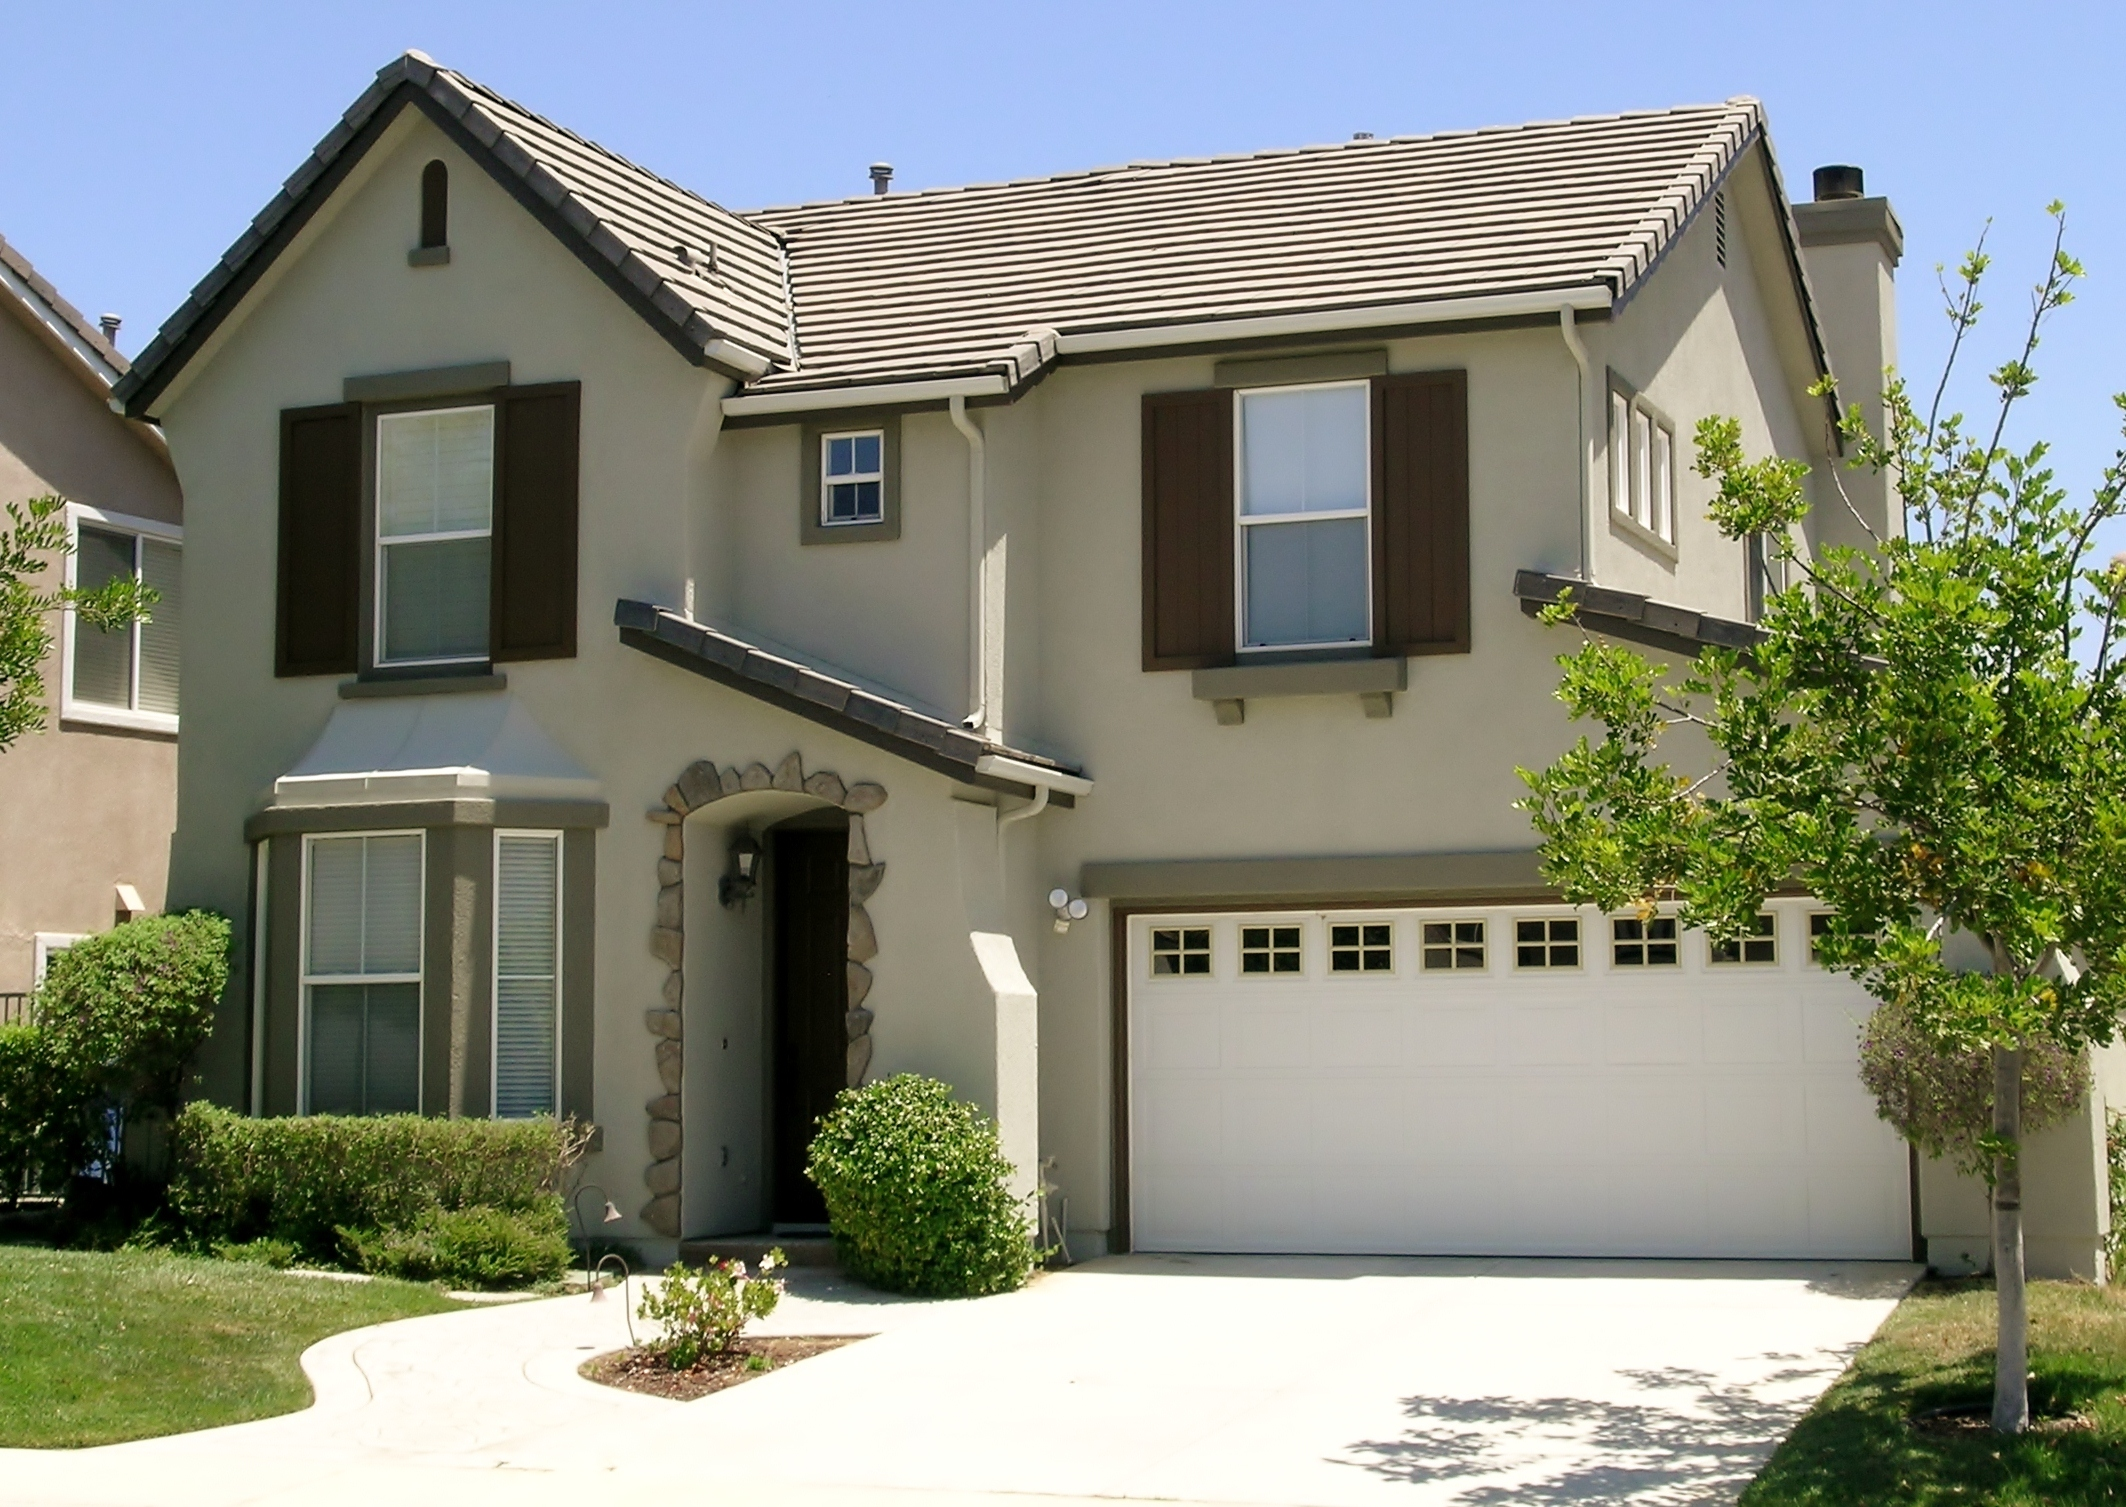 Painter S Blog Exterior Painting Stucco Repairs In Wood